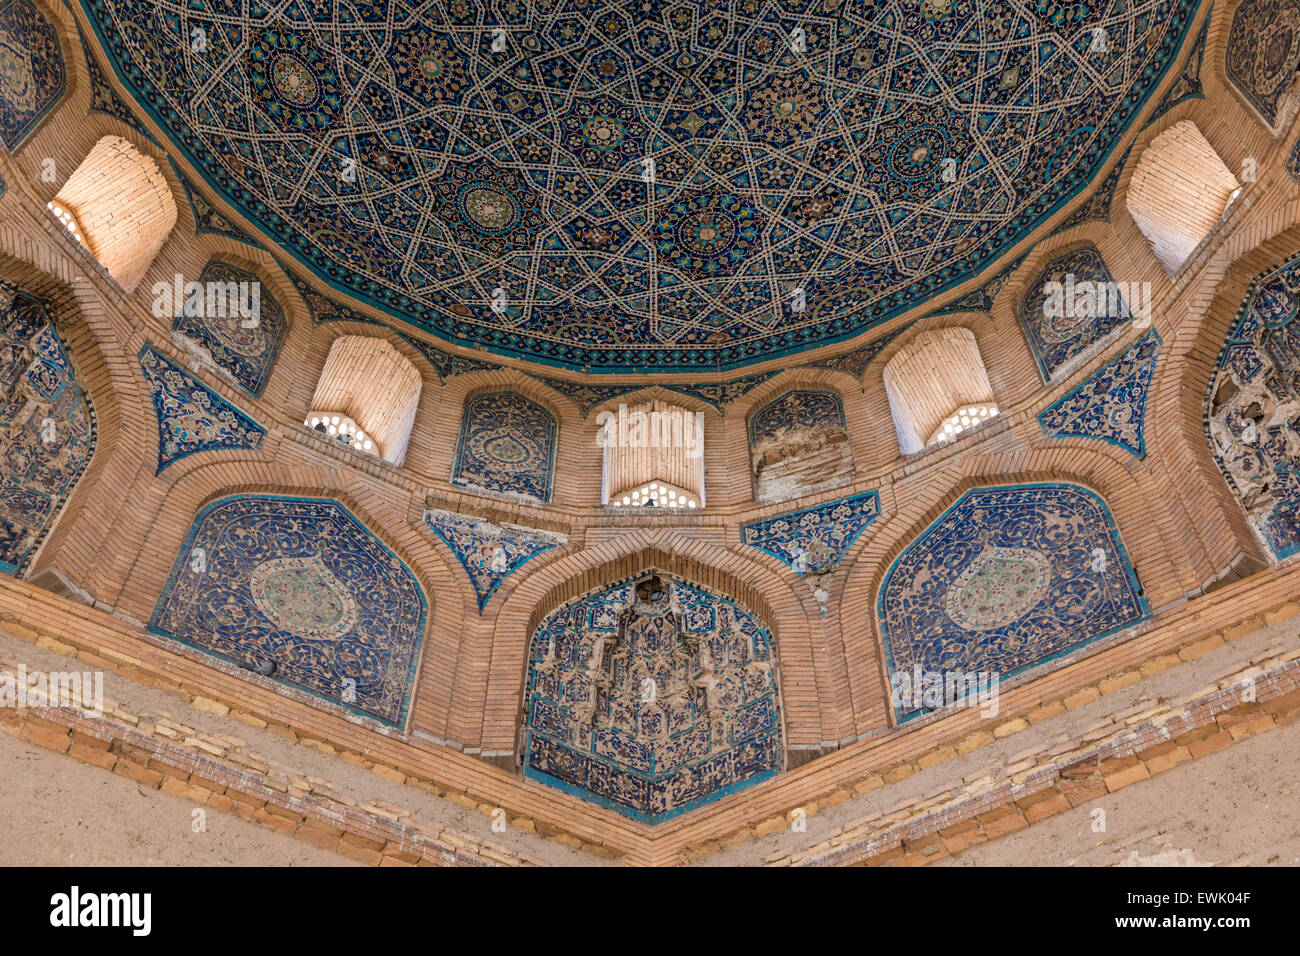 Dome of Turabeg Khanym Mausoleum at Konye Urgench Turkmenistan - Stock Image